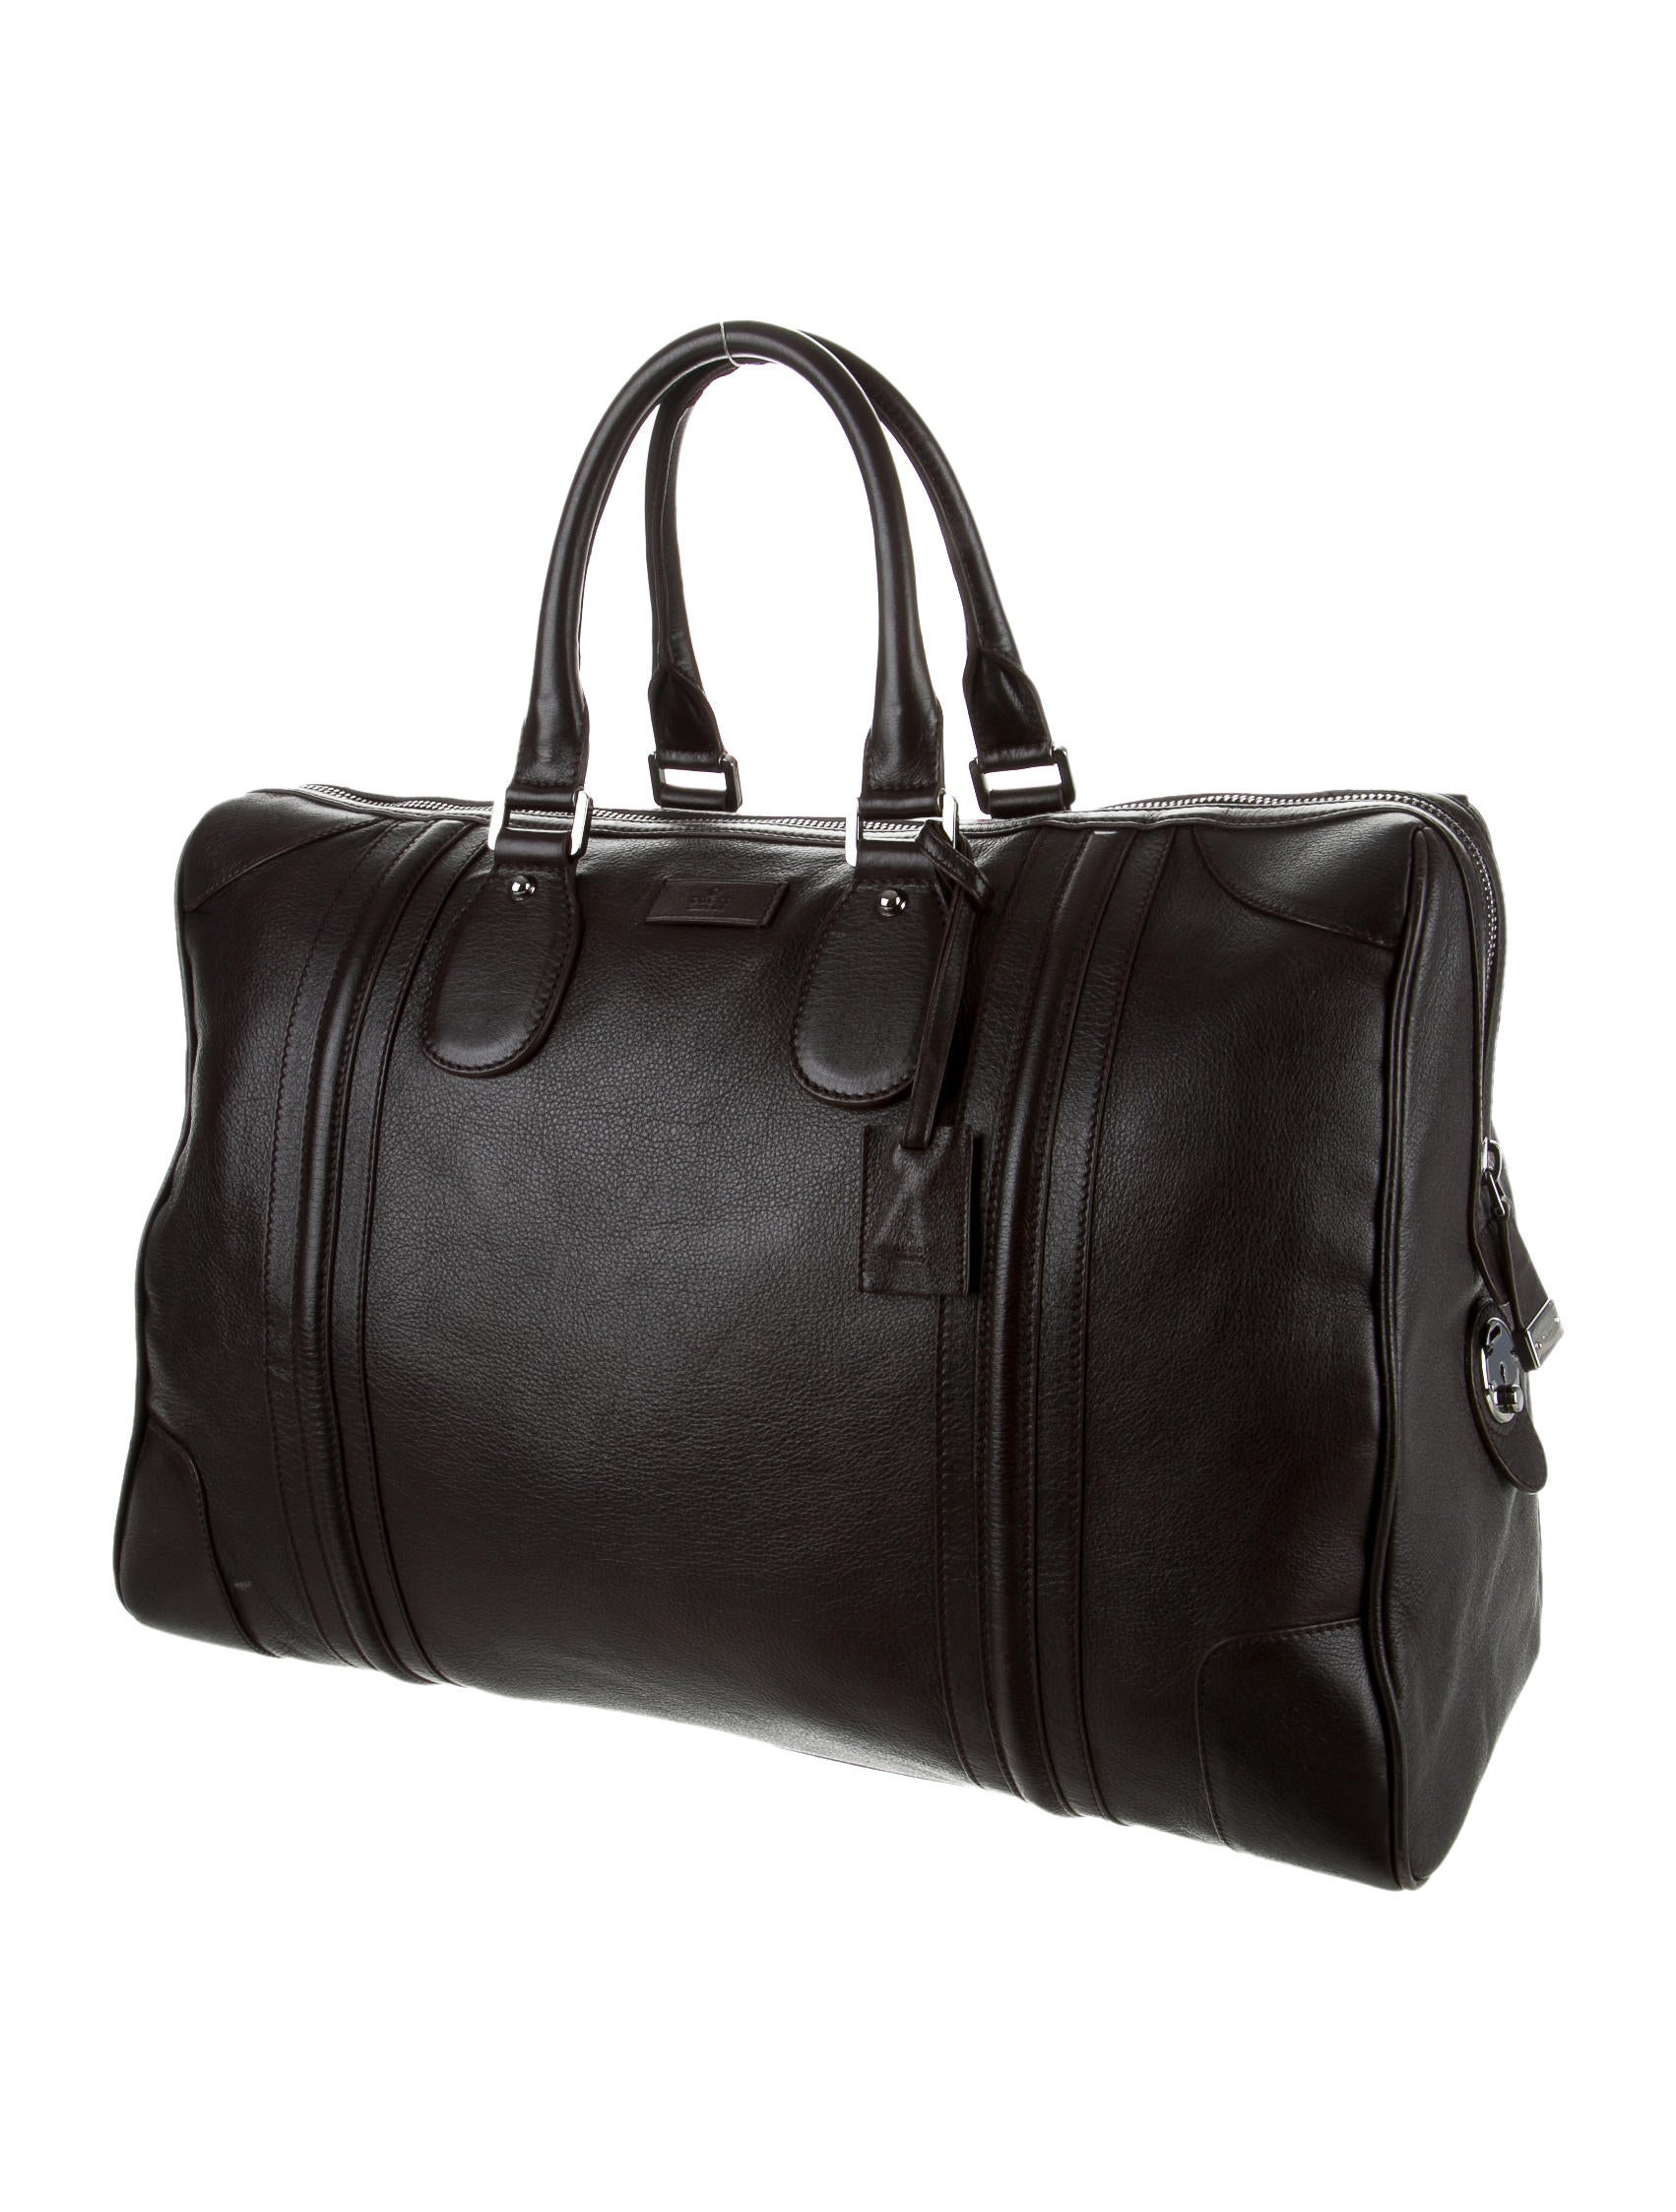 95c9c28392af Mens Gucci Duffle Bag Sale | Stanford Center for Opportunity Policy ...